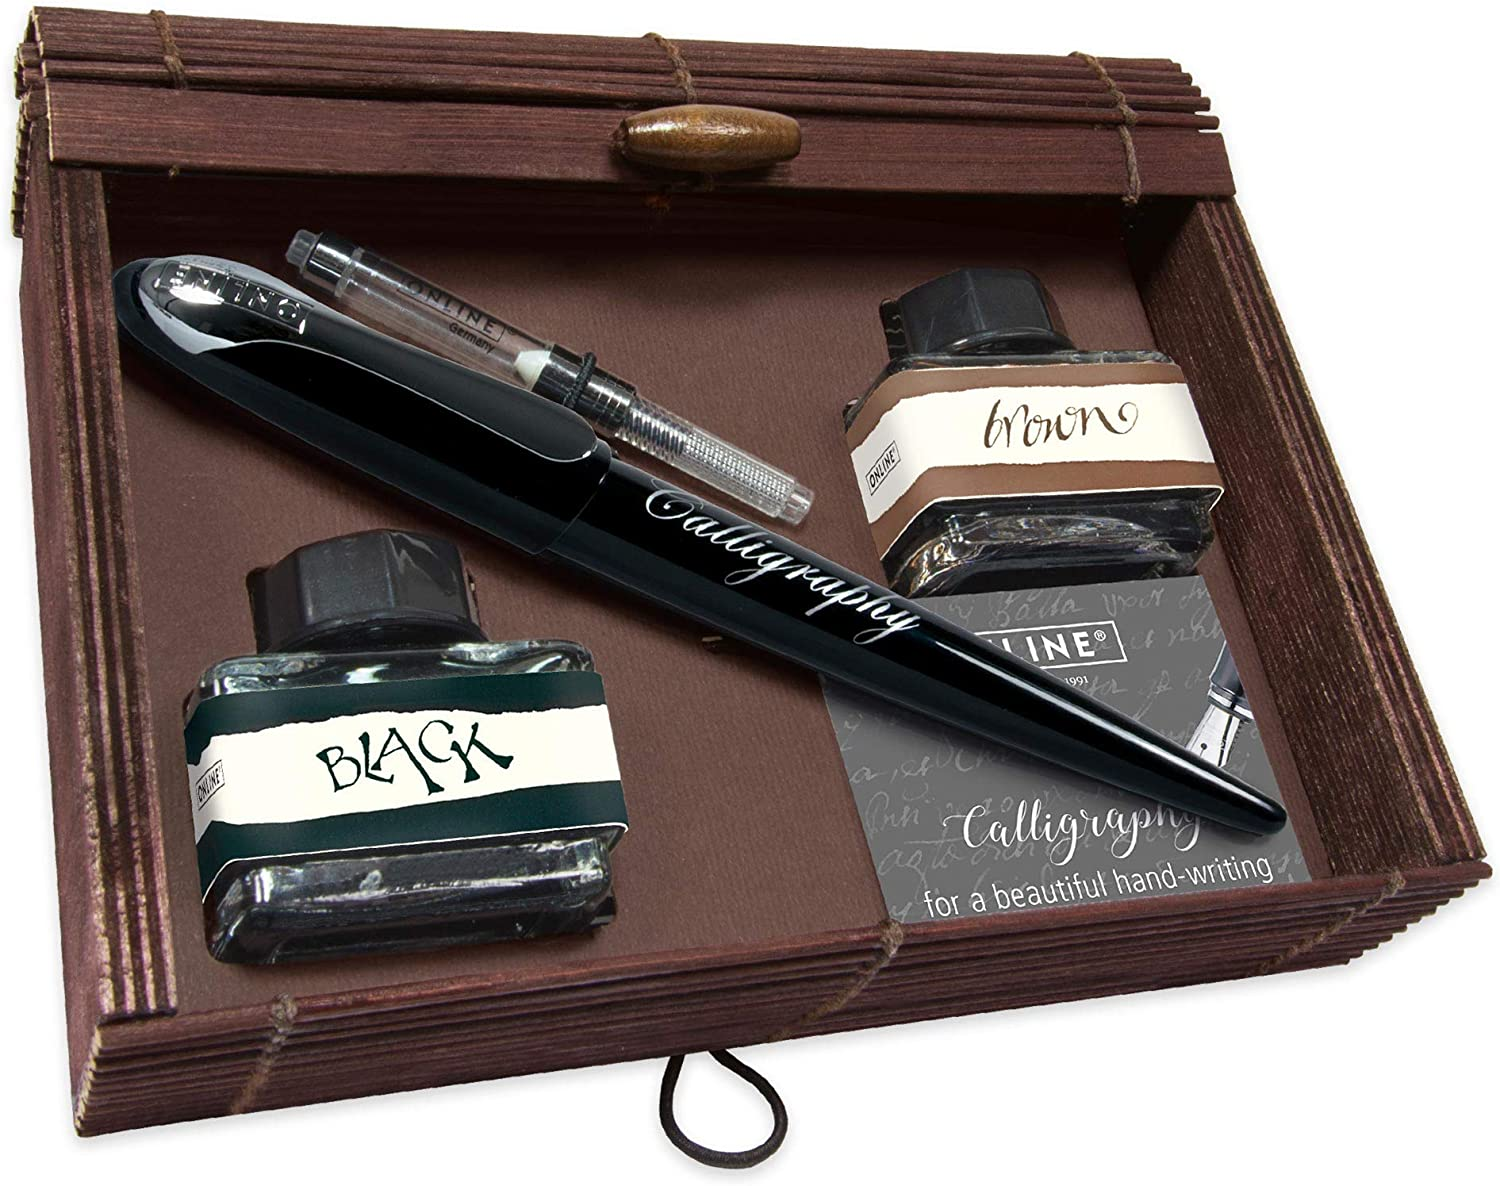 Free shipping on posting reviews free Online Calligraphy Set Black Air